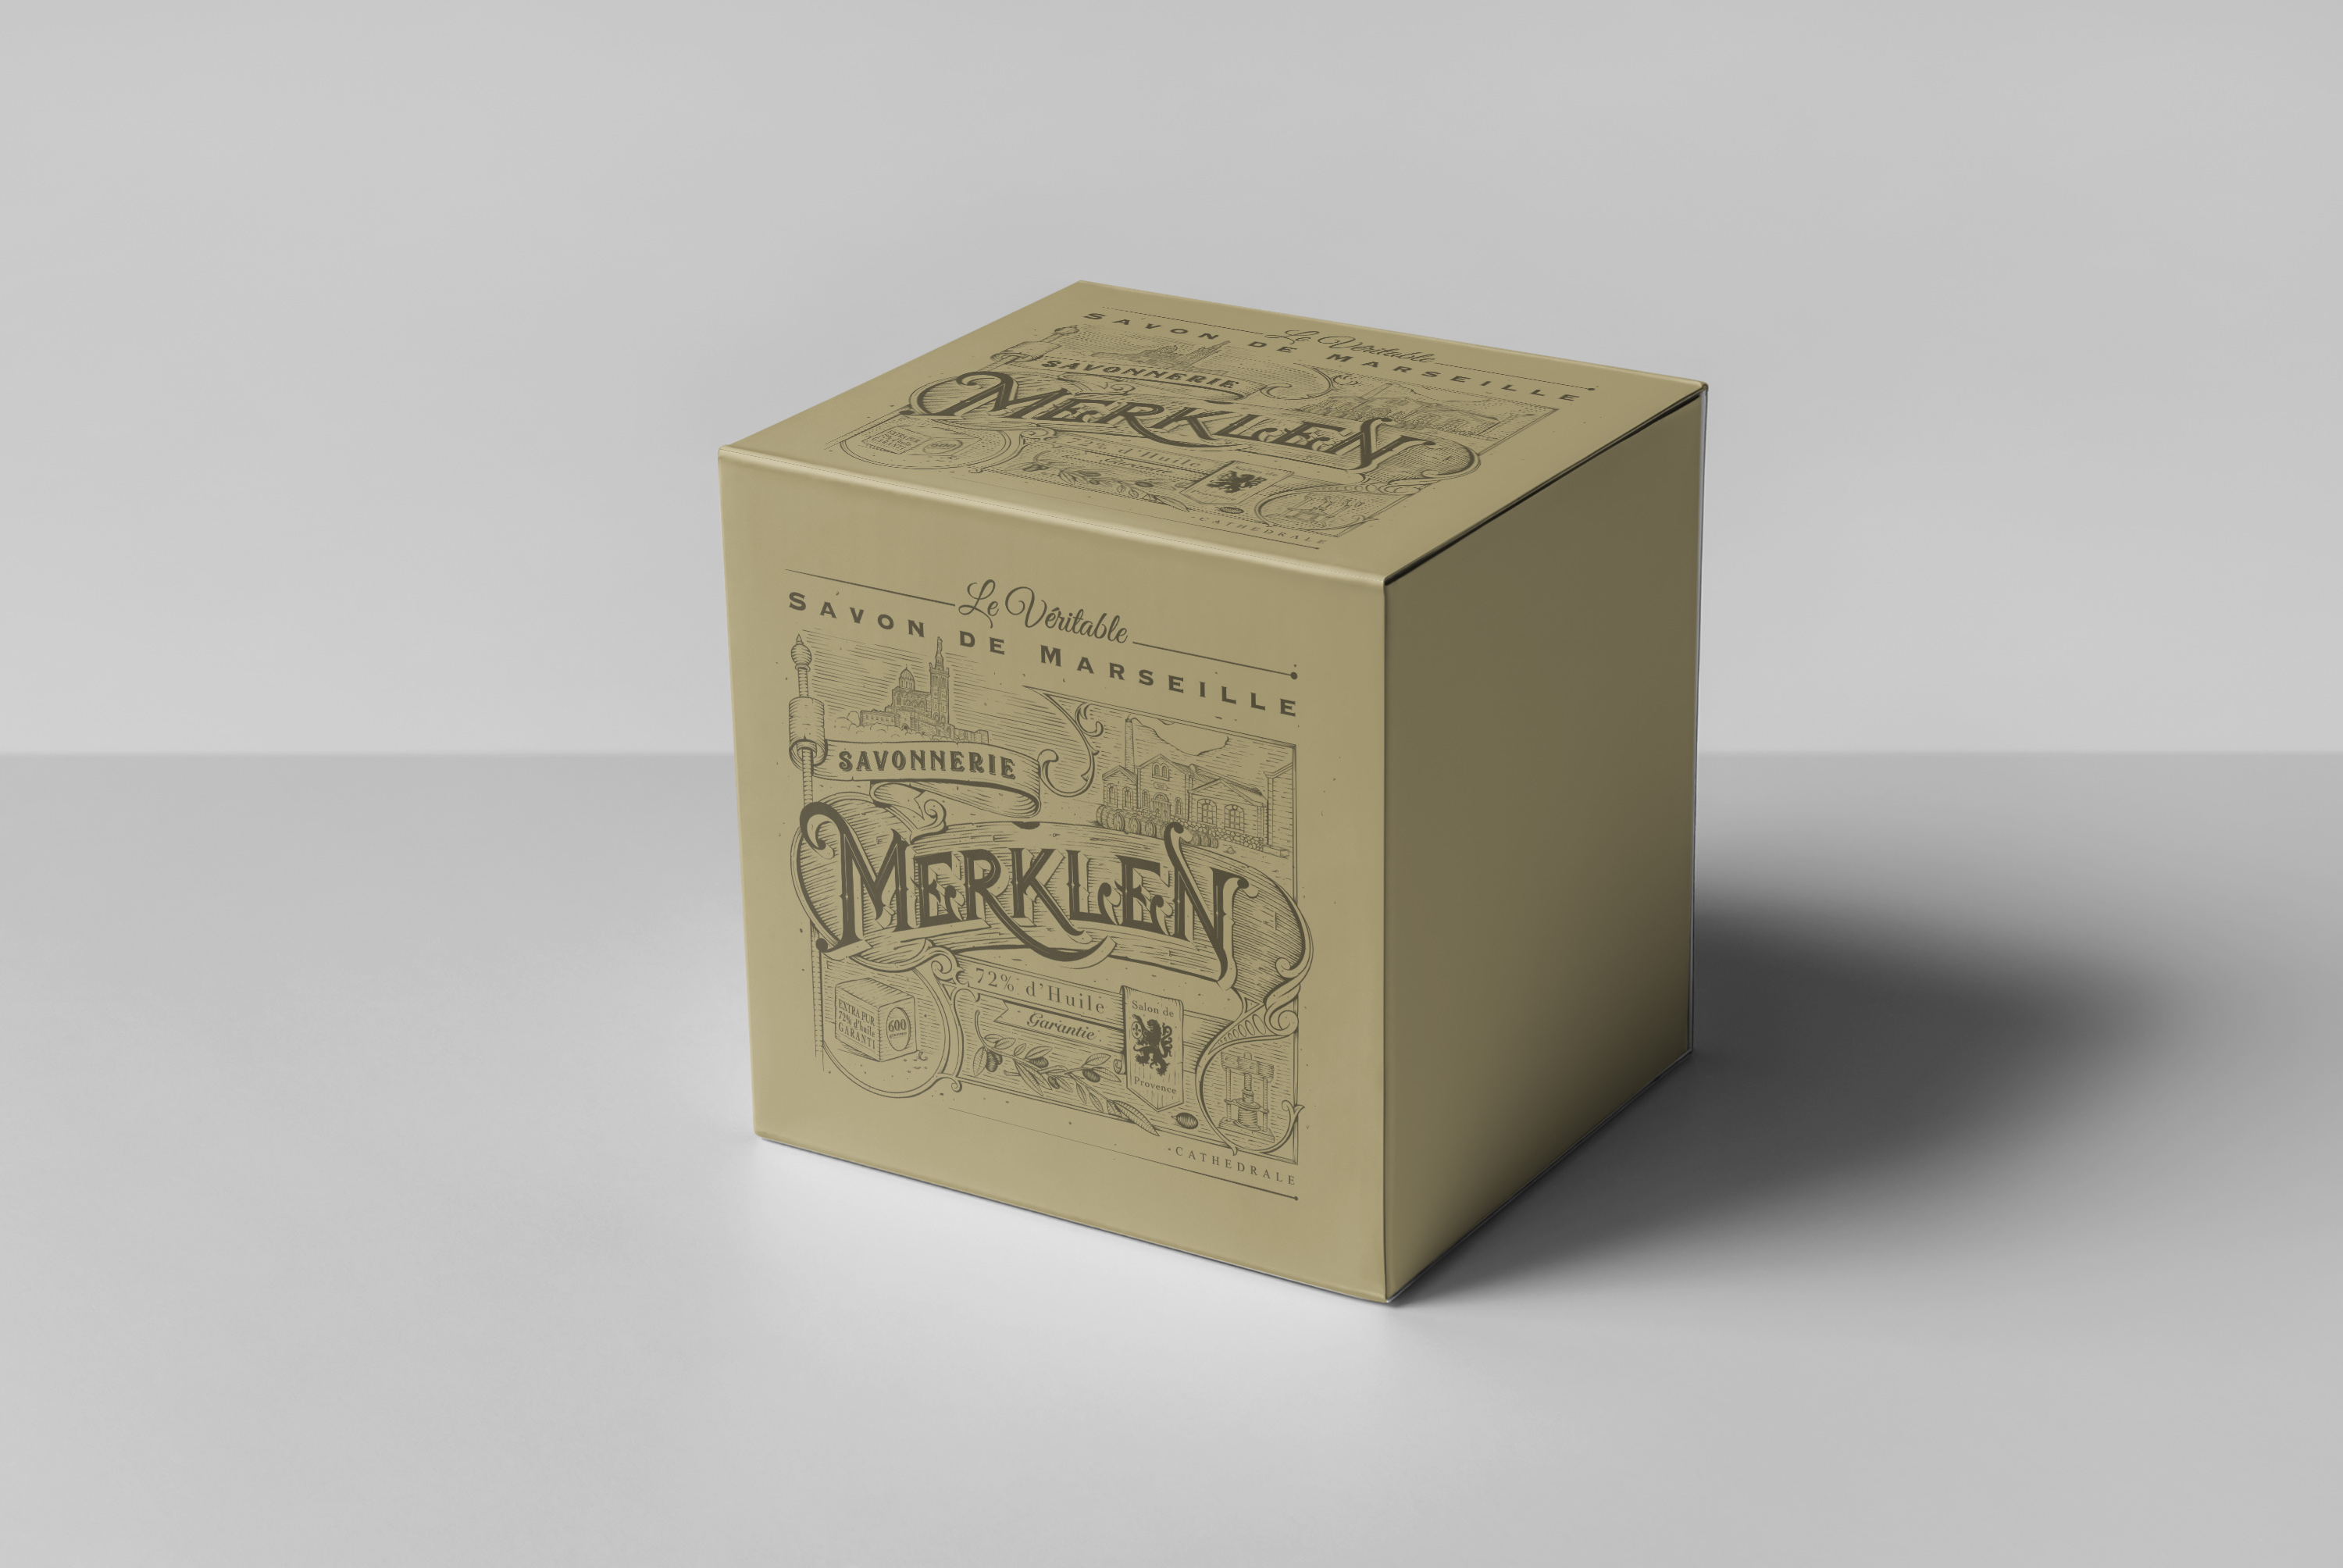 A Vintage design in homage to Marseille soap